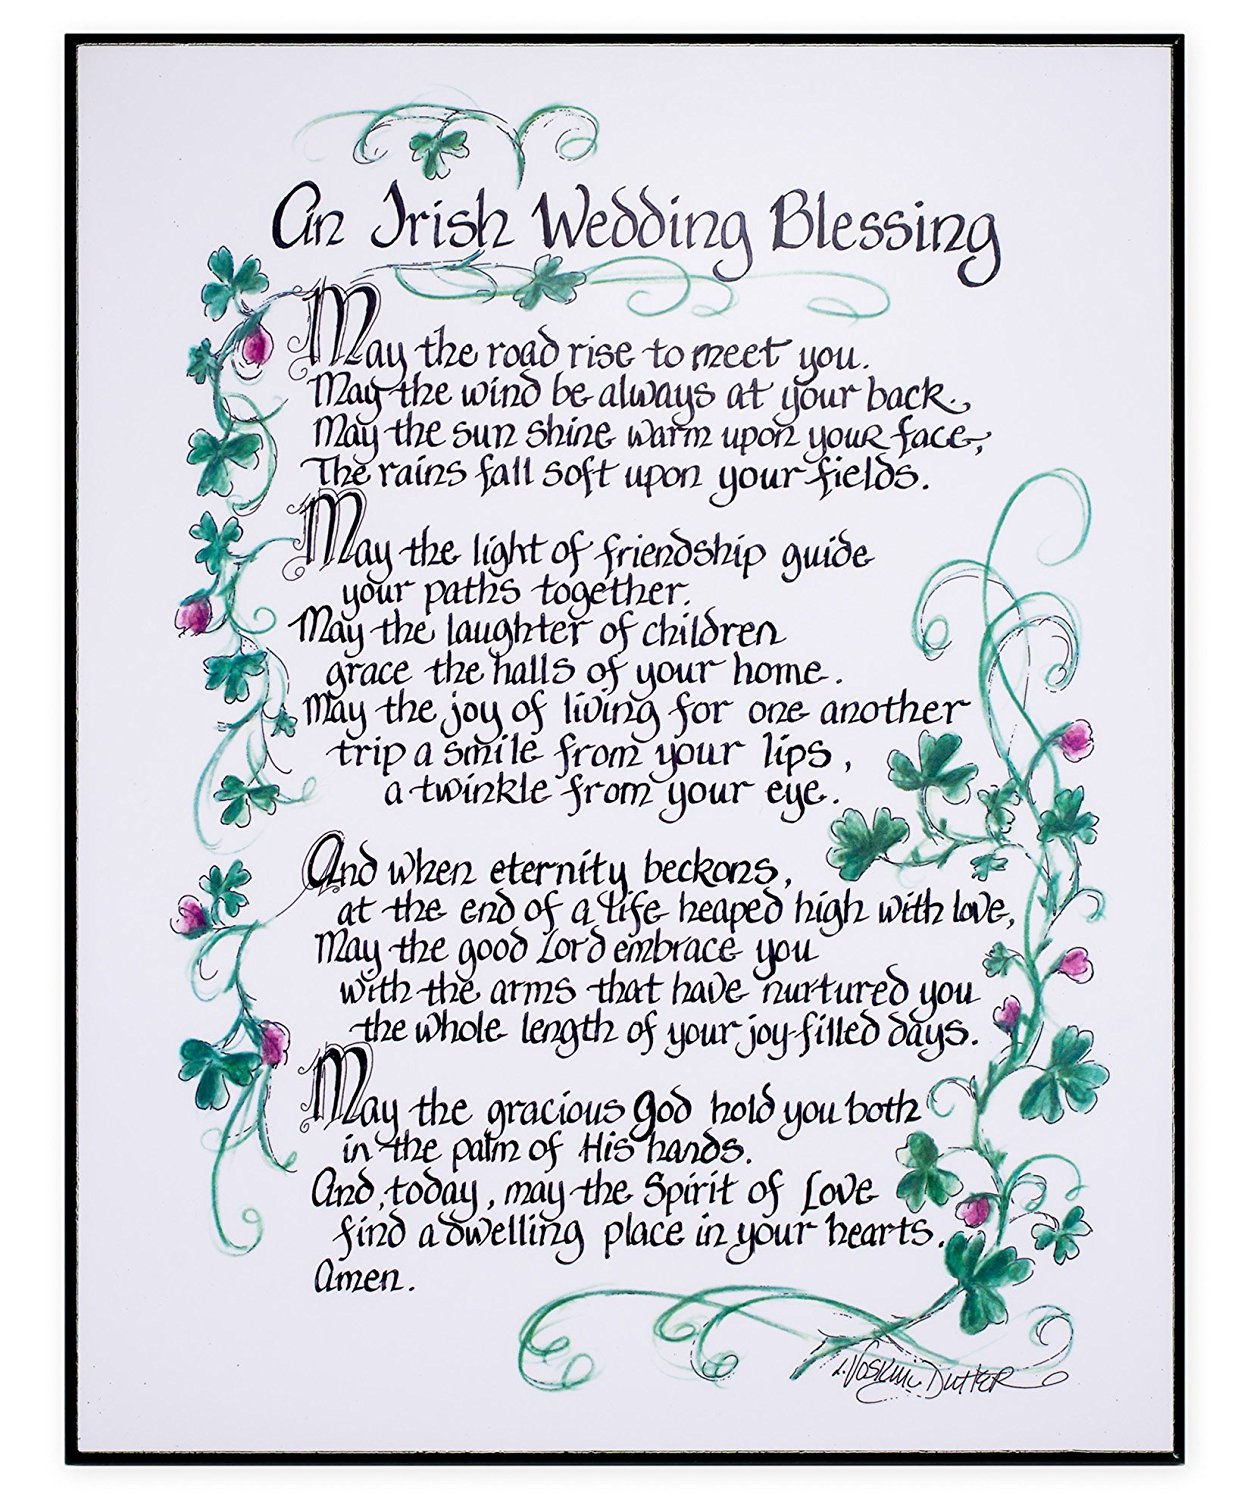 Wedding Prayers: Wedding Traditions And Meanings: Irish Wedding Blessings